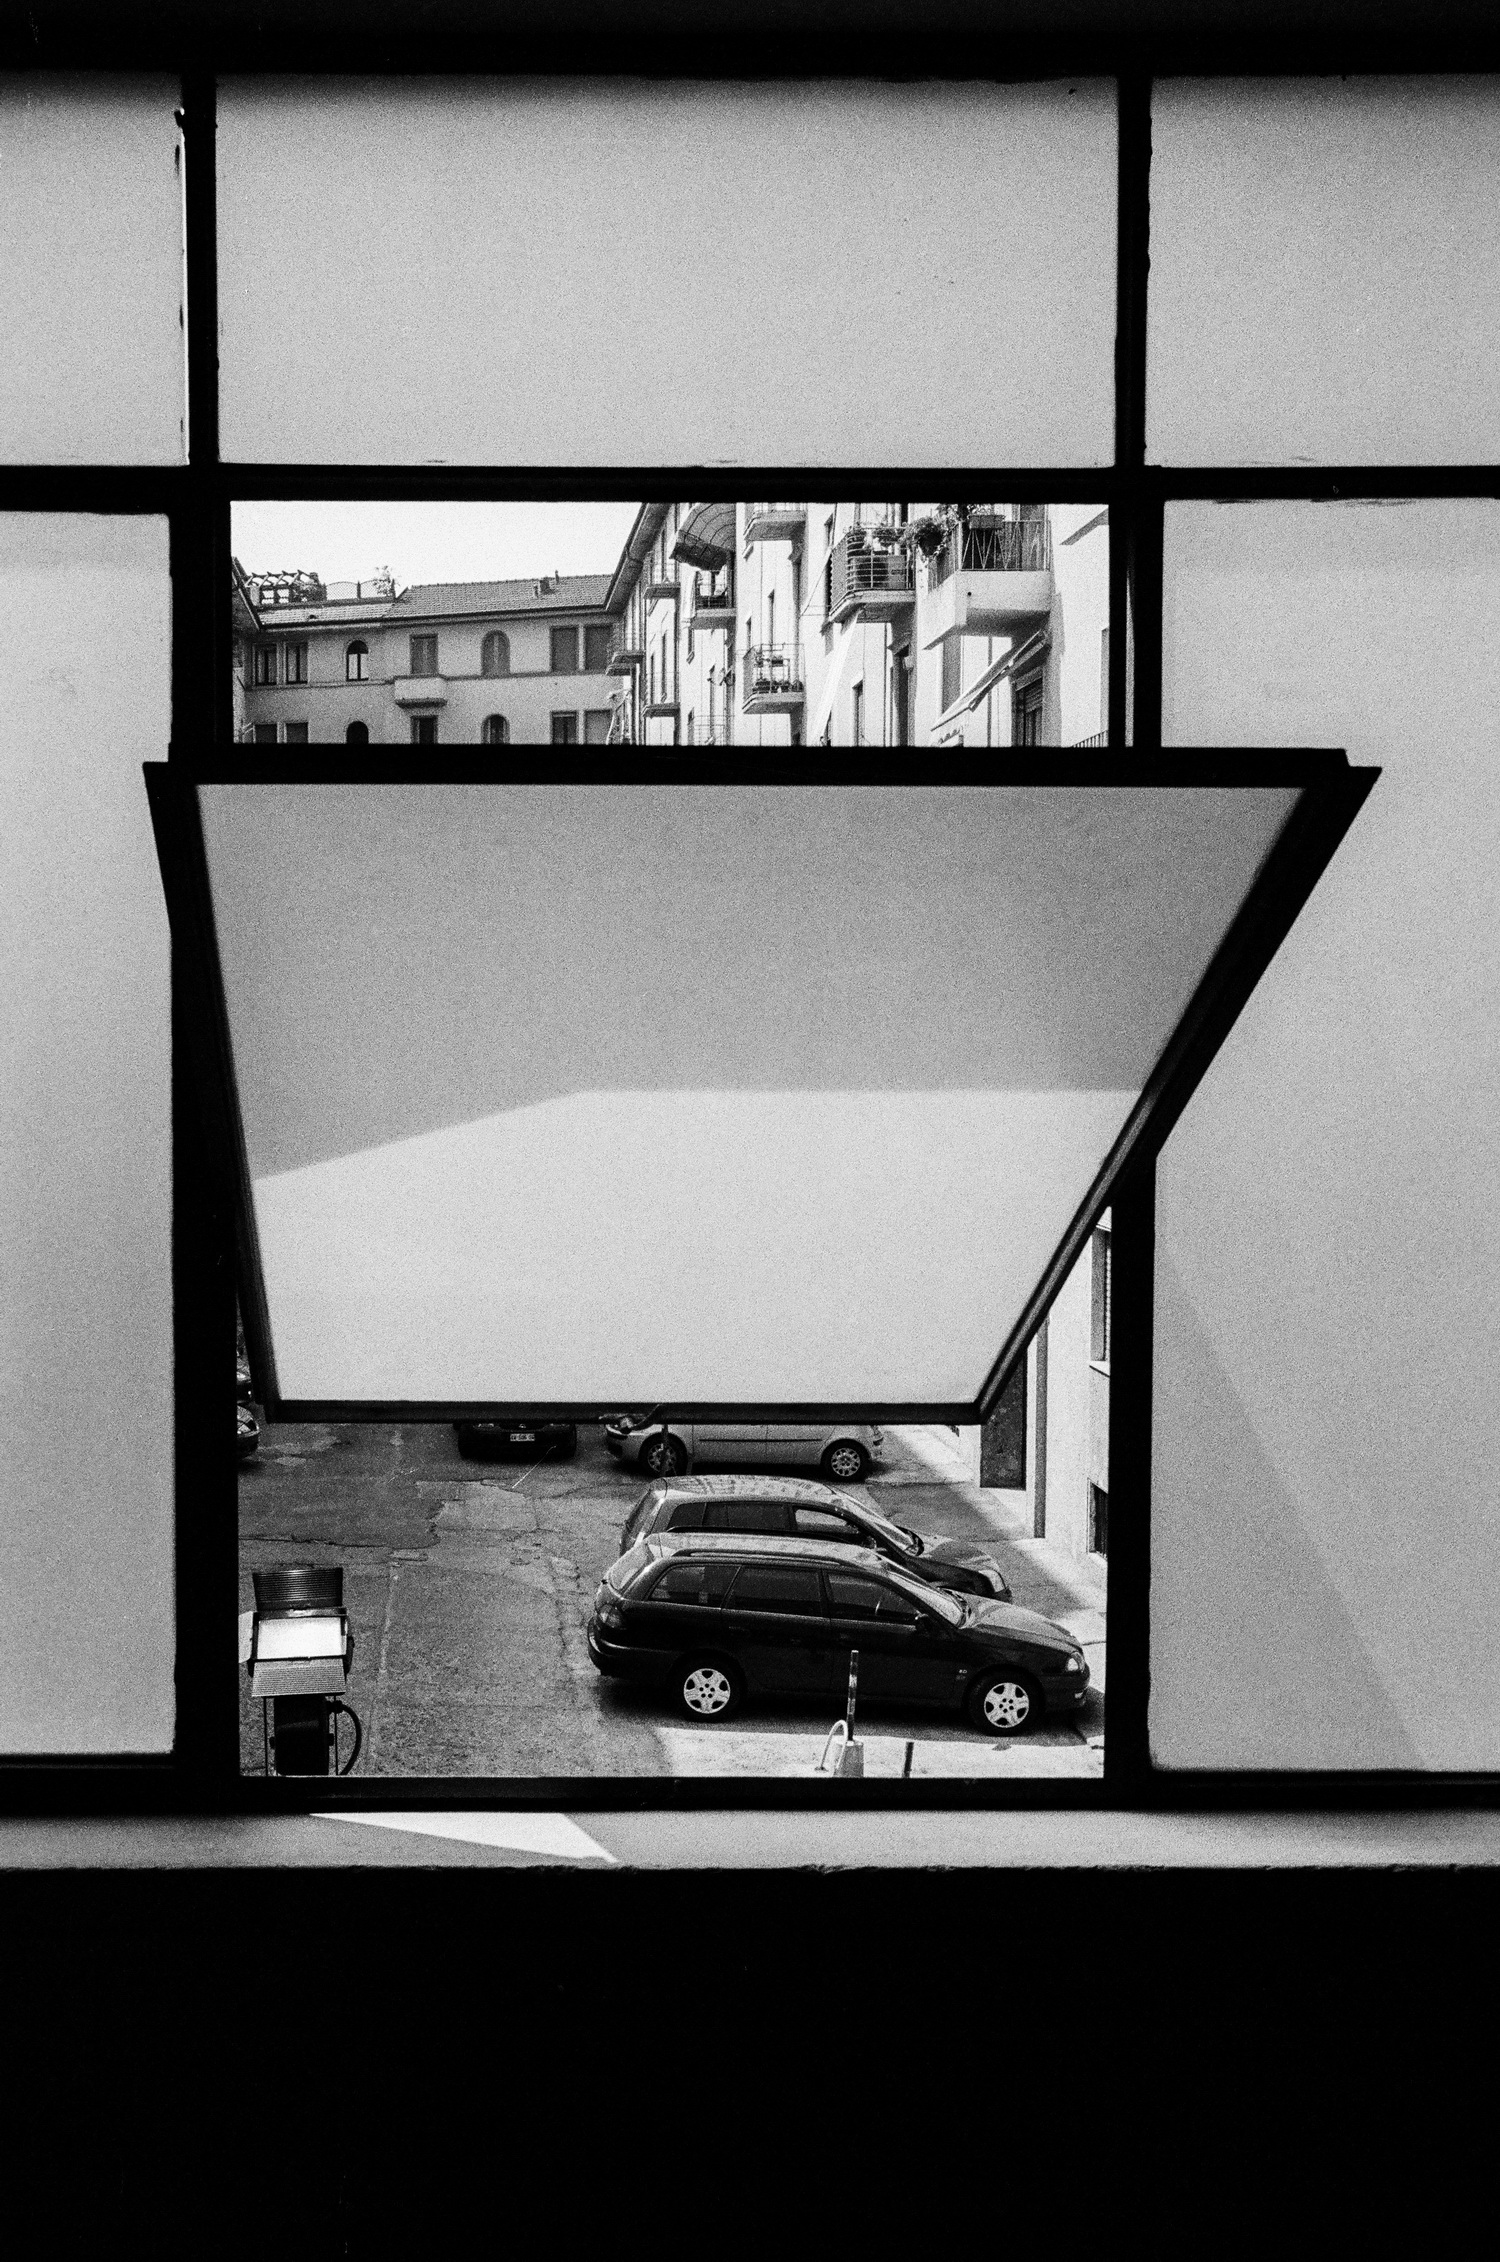 A Window and Milan